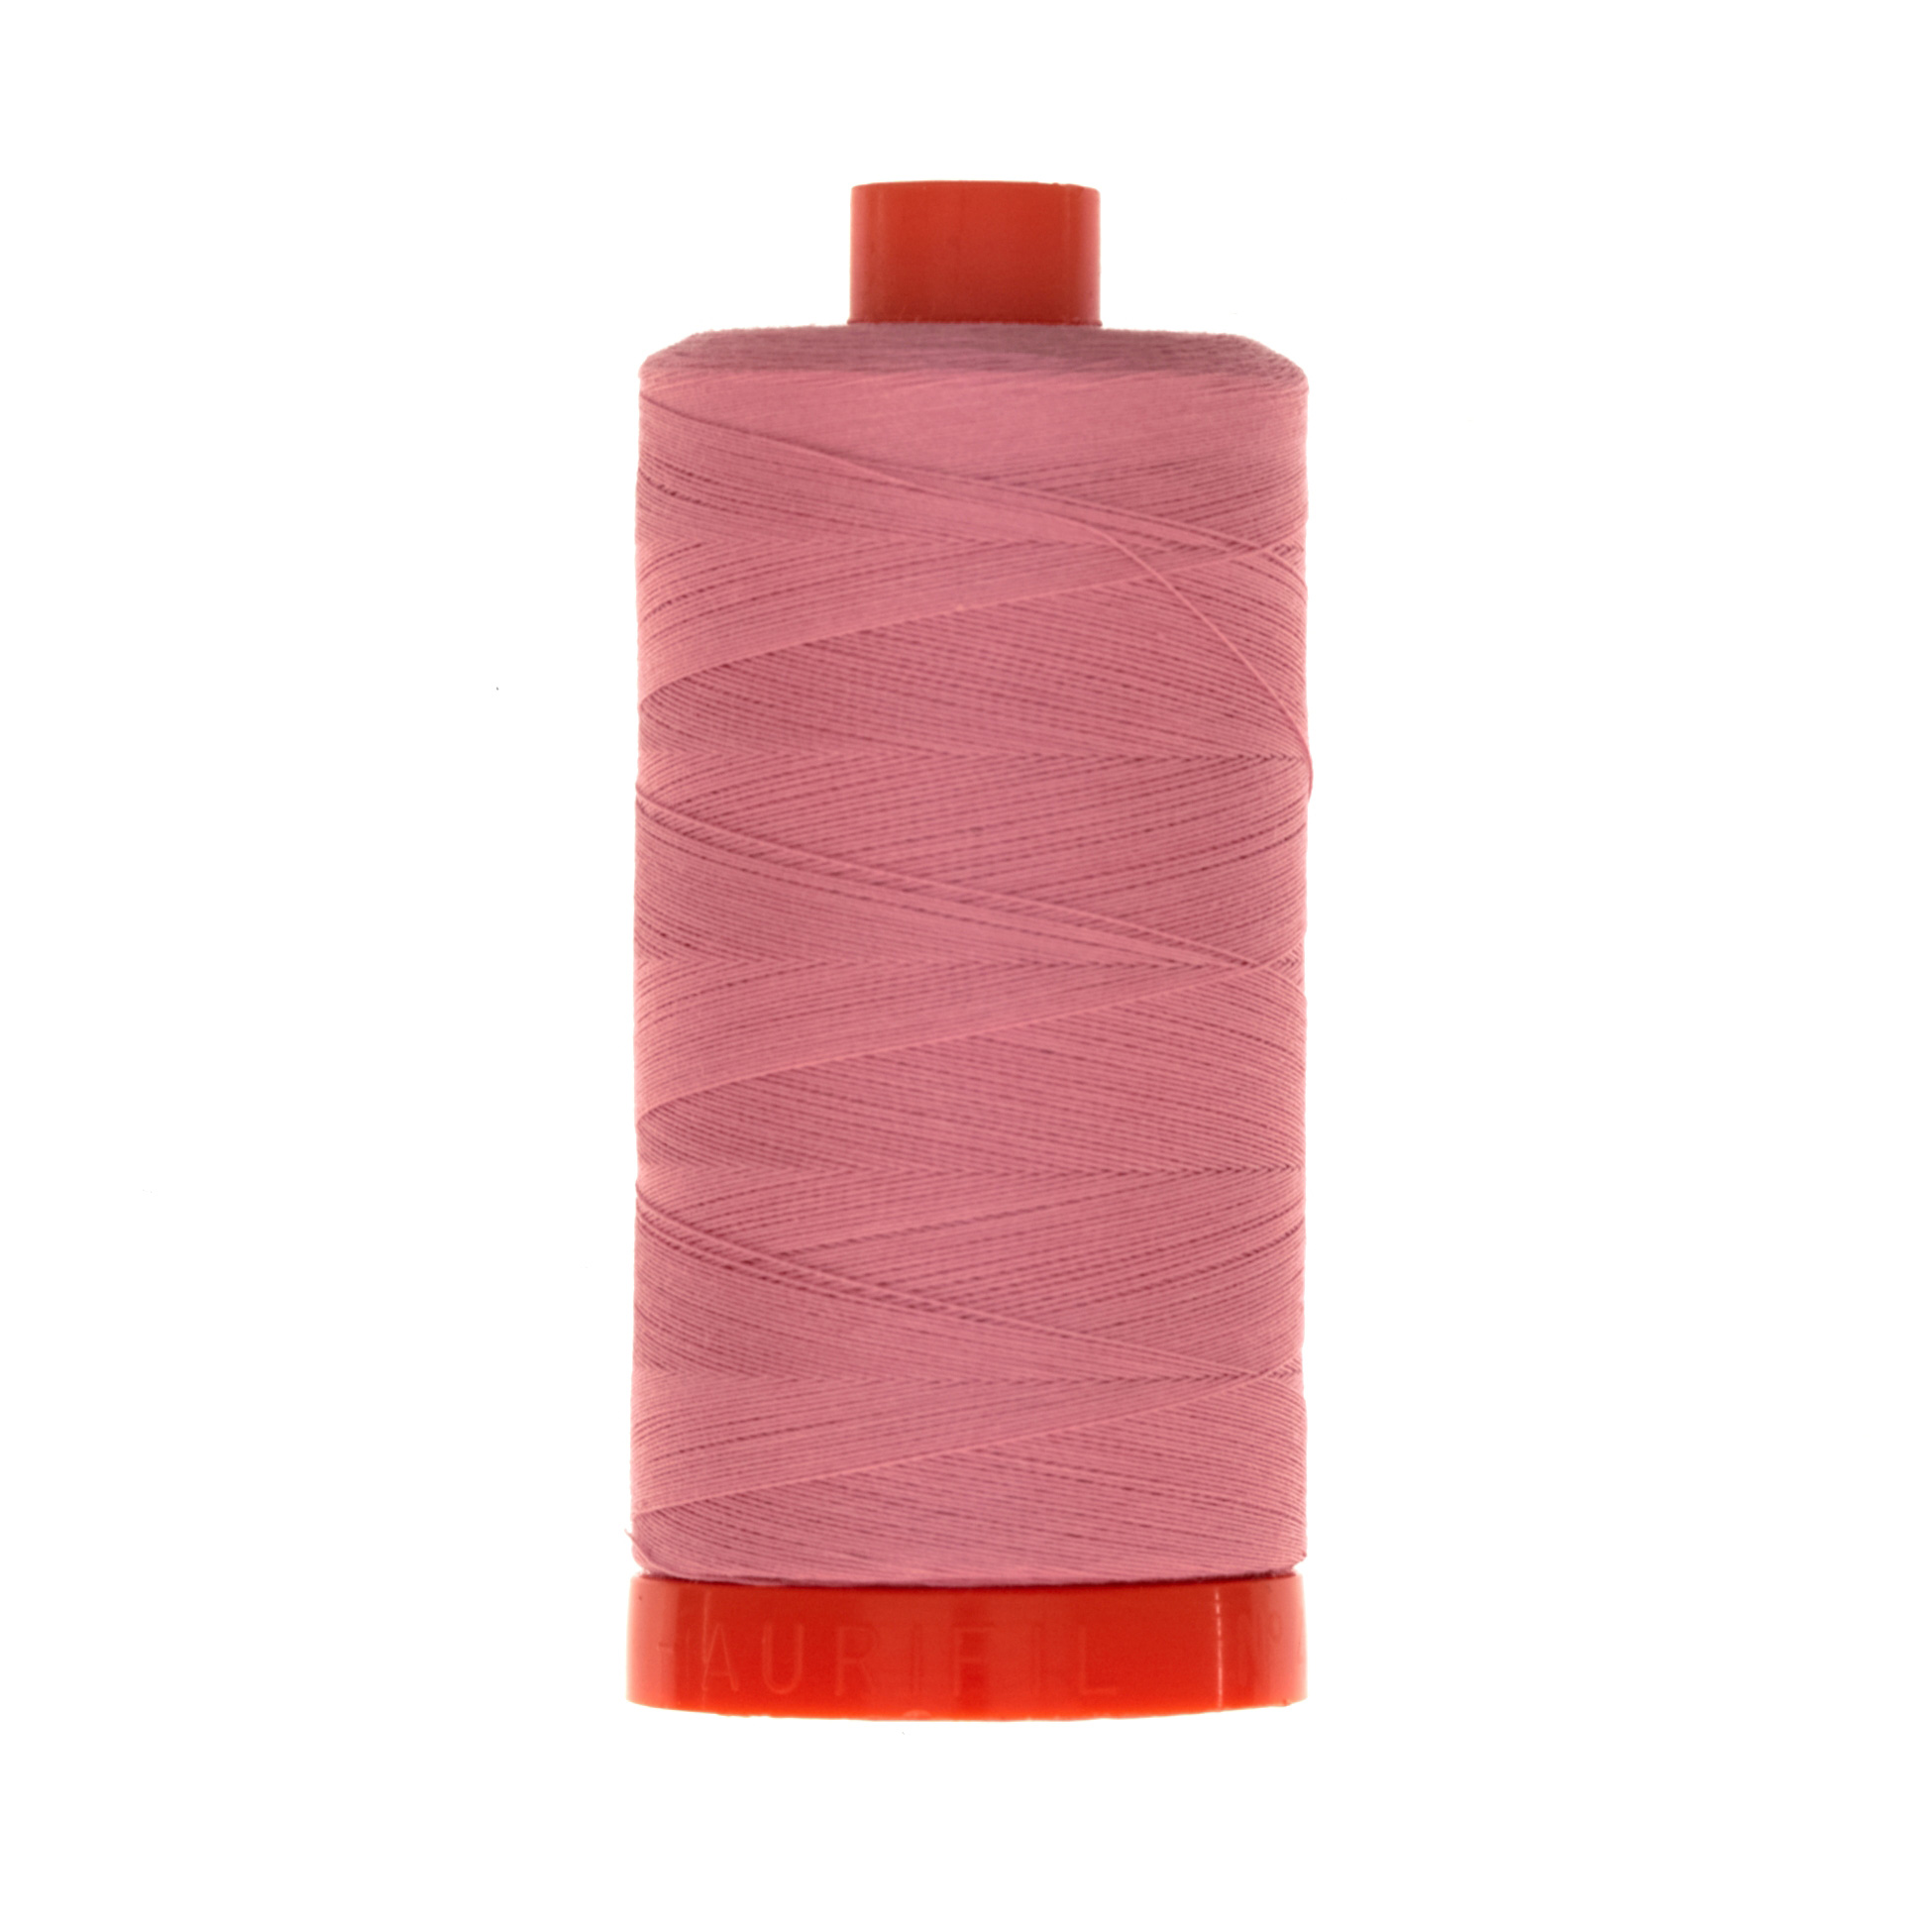 Aurifil Quilting Thread 50wt Antique Rose